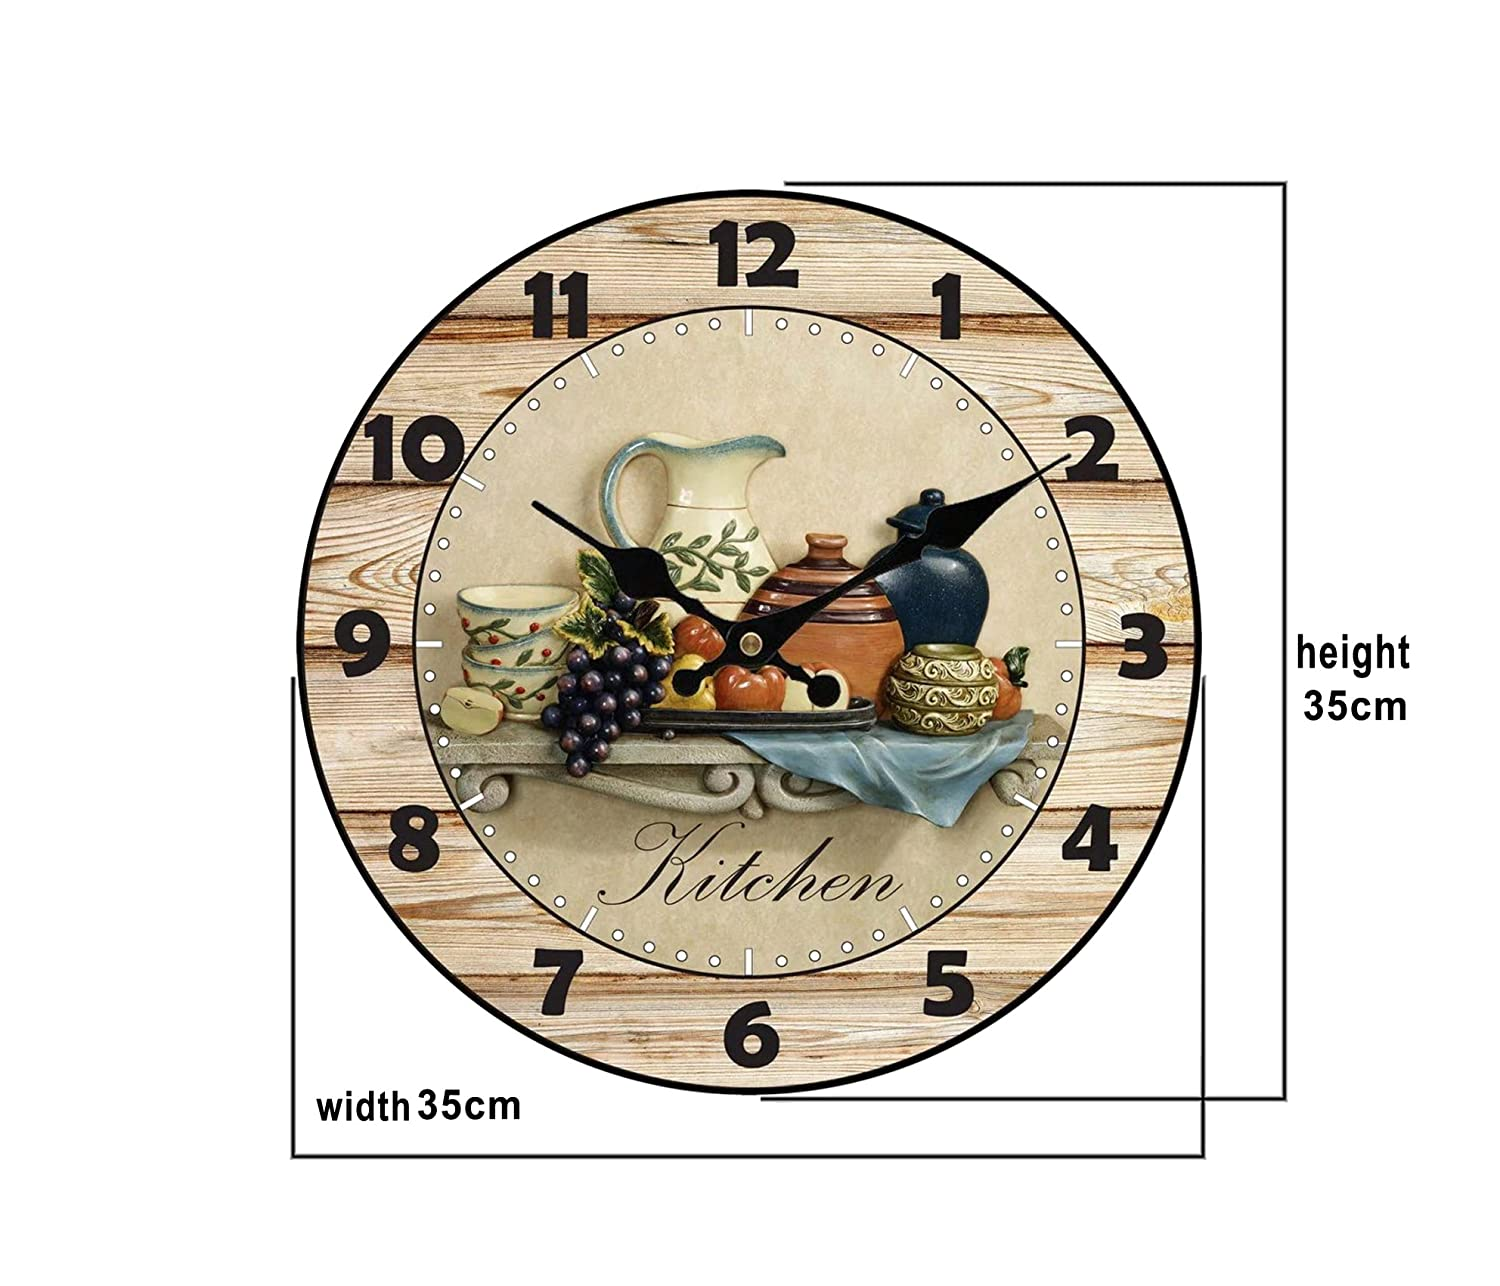 Amazon.com: Upuptop Modern Home Decor Quiet Sweep Movement Kitchen Round Wood Wall Clock Fruit Ceramics 14inch: Home & Kitchen